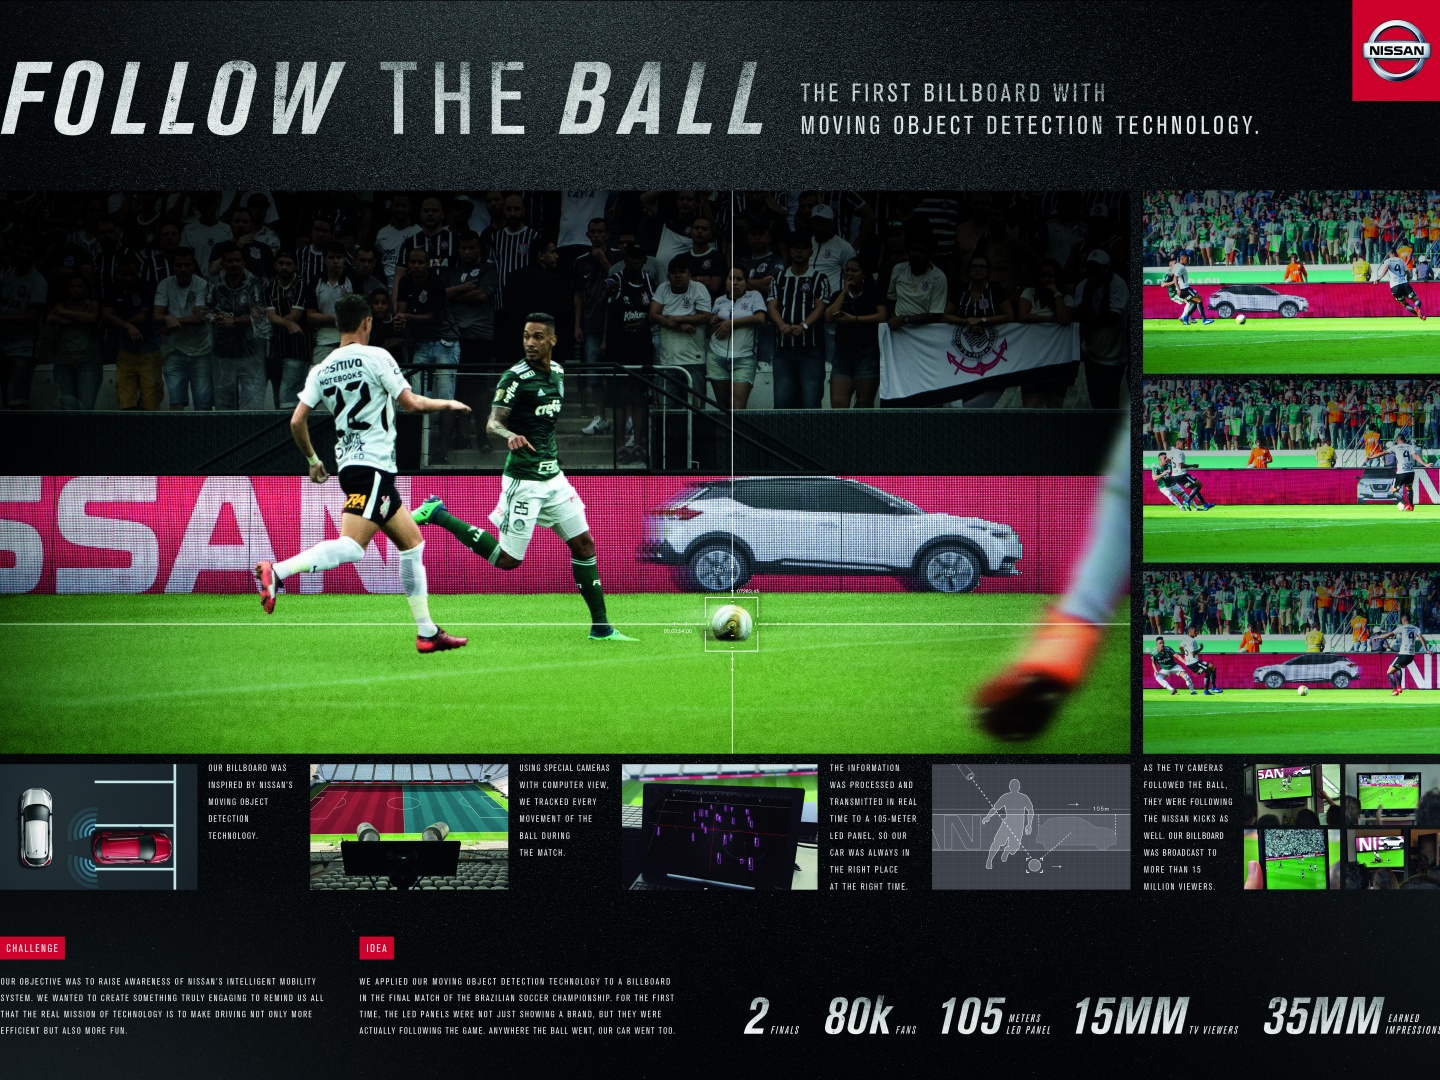 Nissan's Follow the Ball Thumbnail